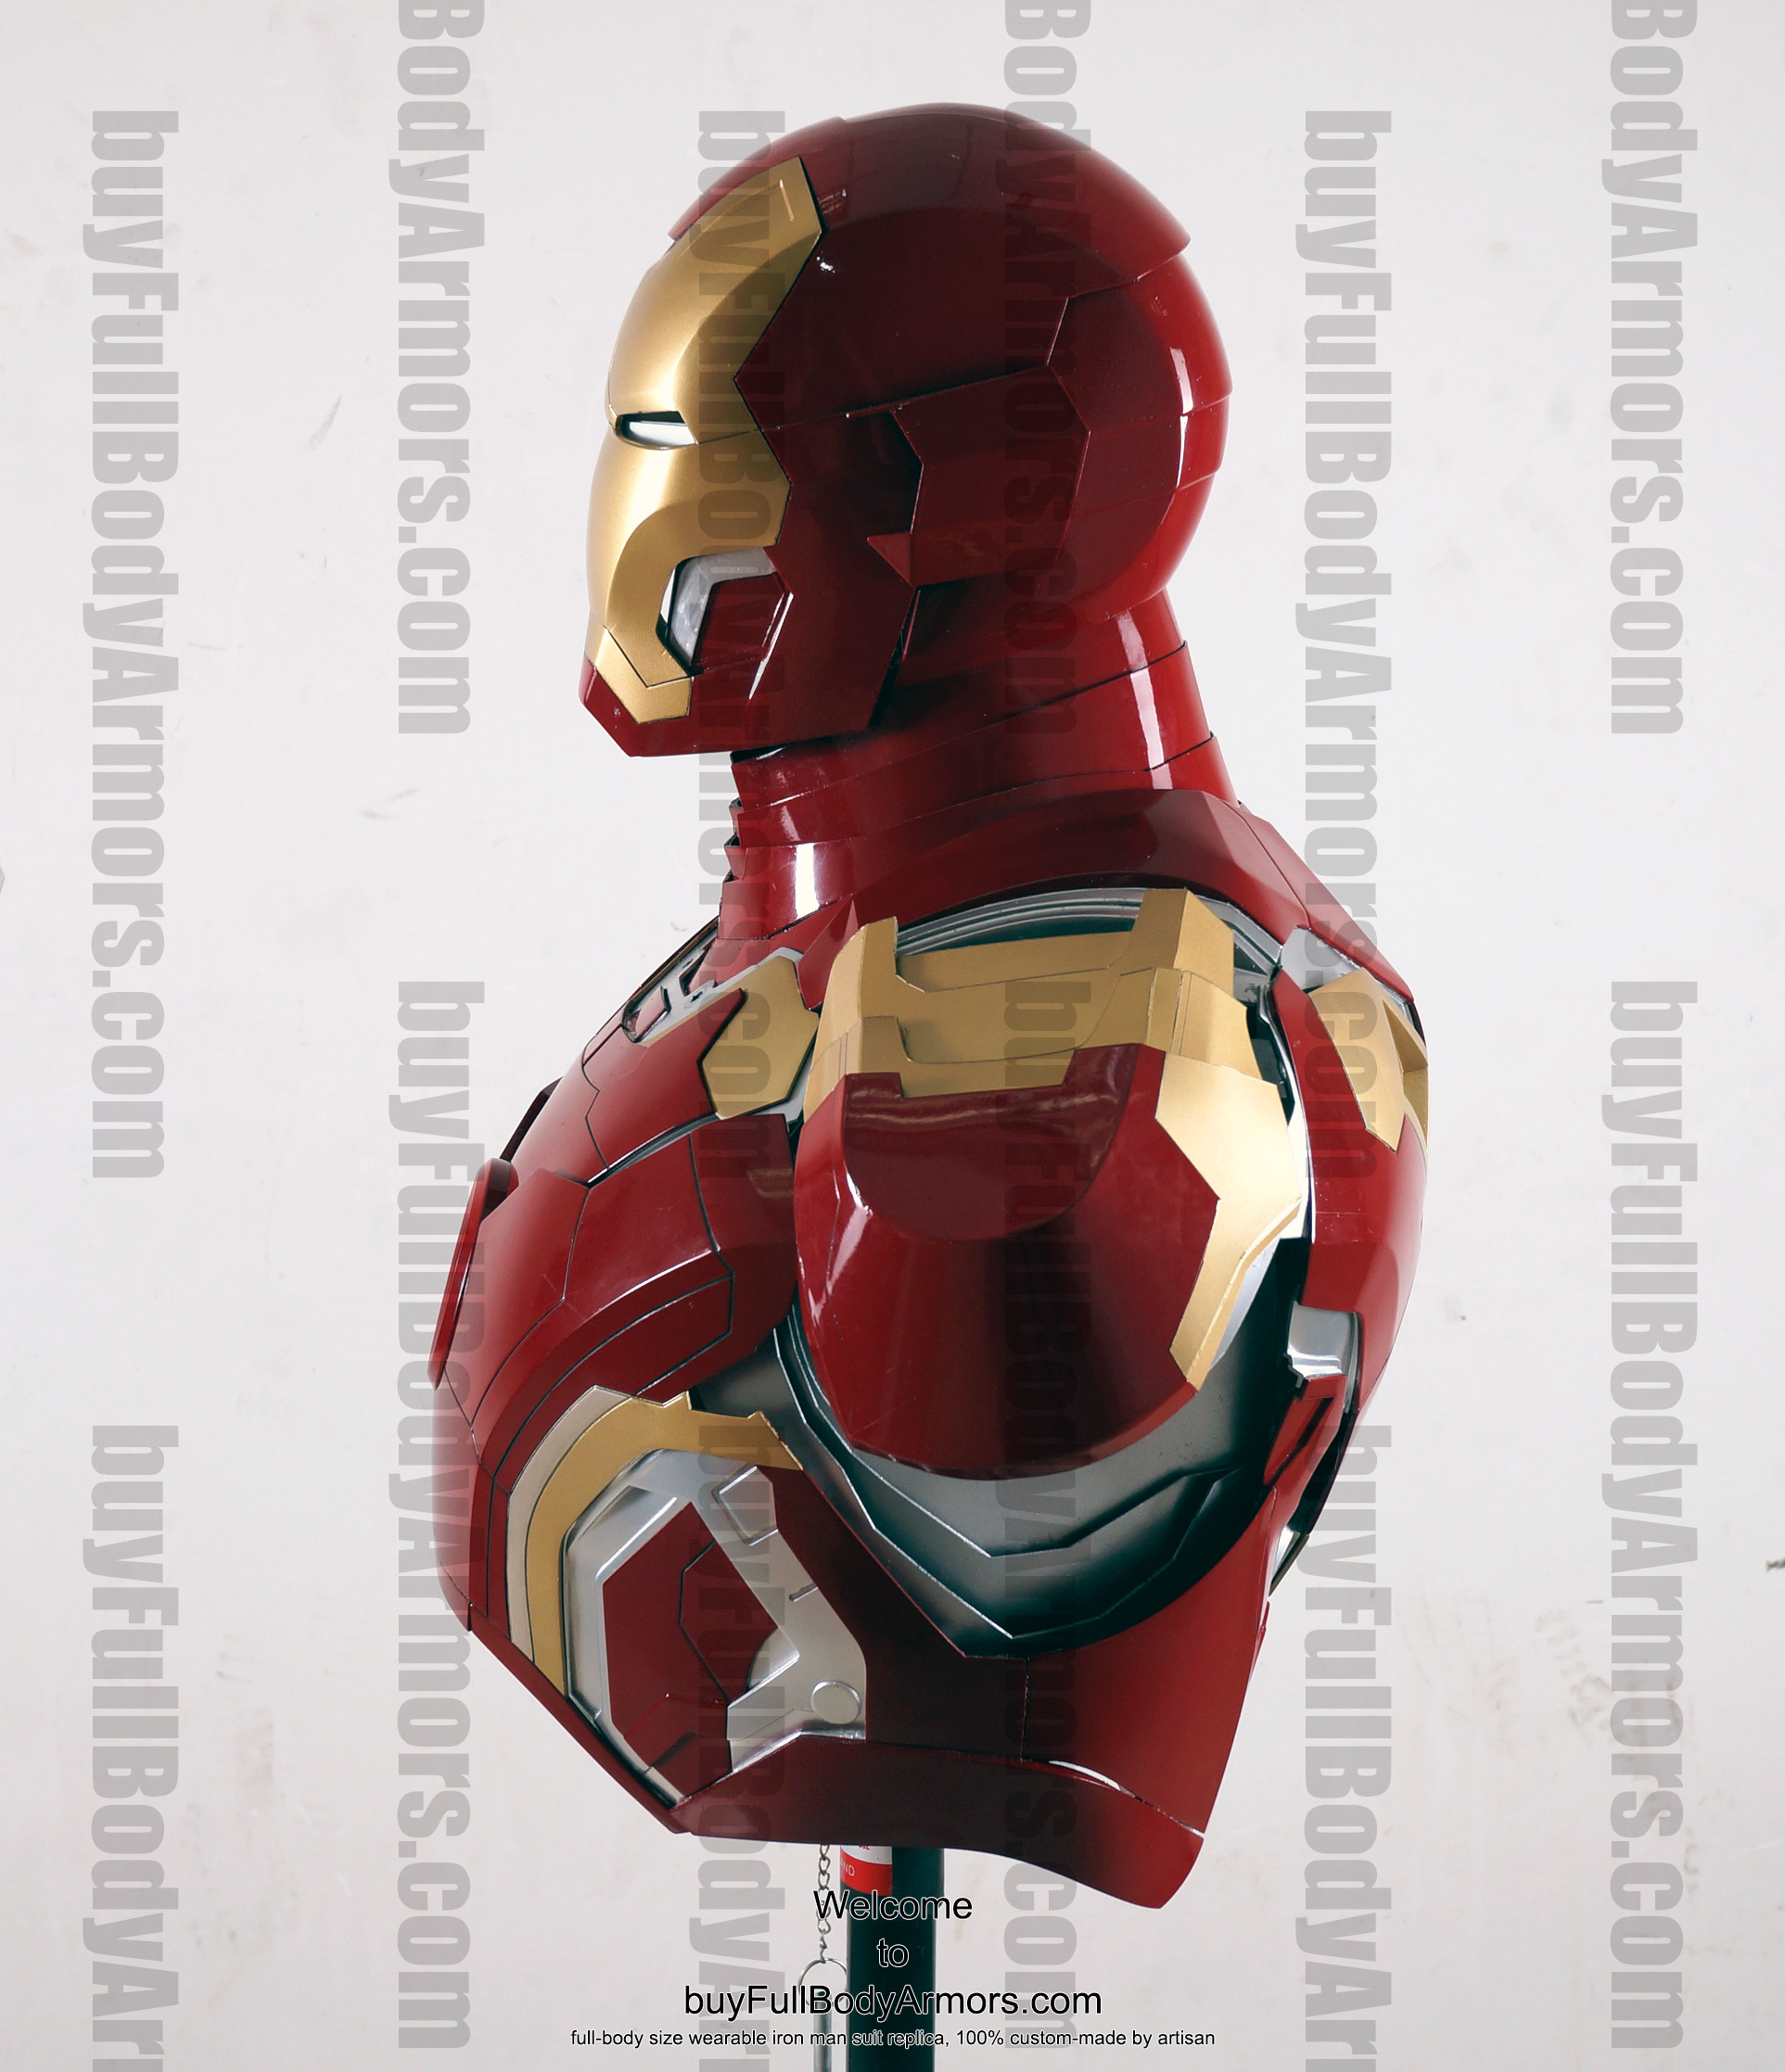 the wearable Iron Man Mark 43 (XLIII) suit costume bust side 2